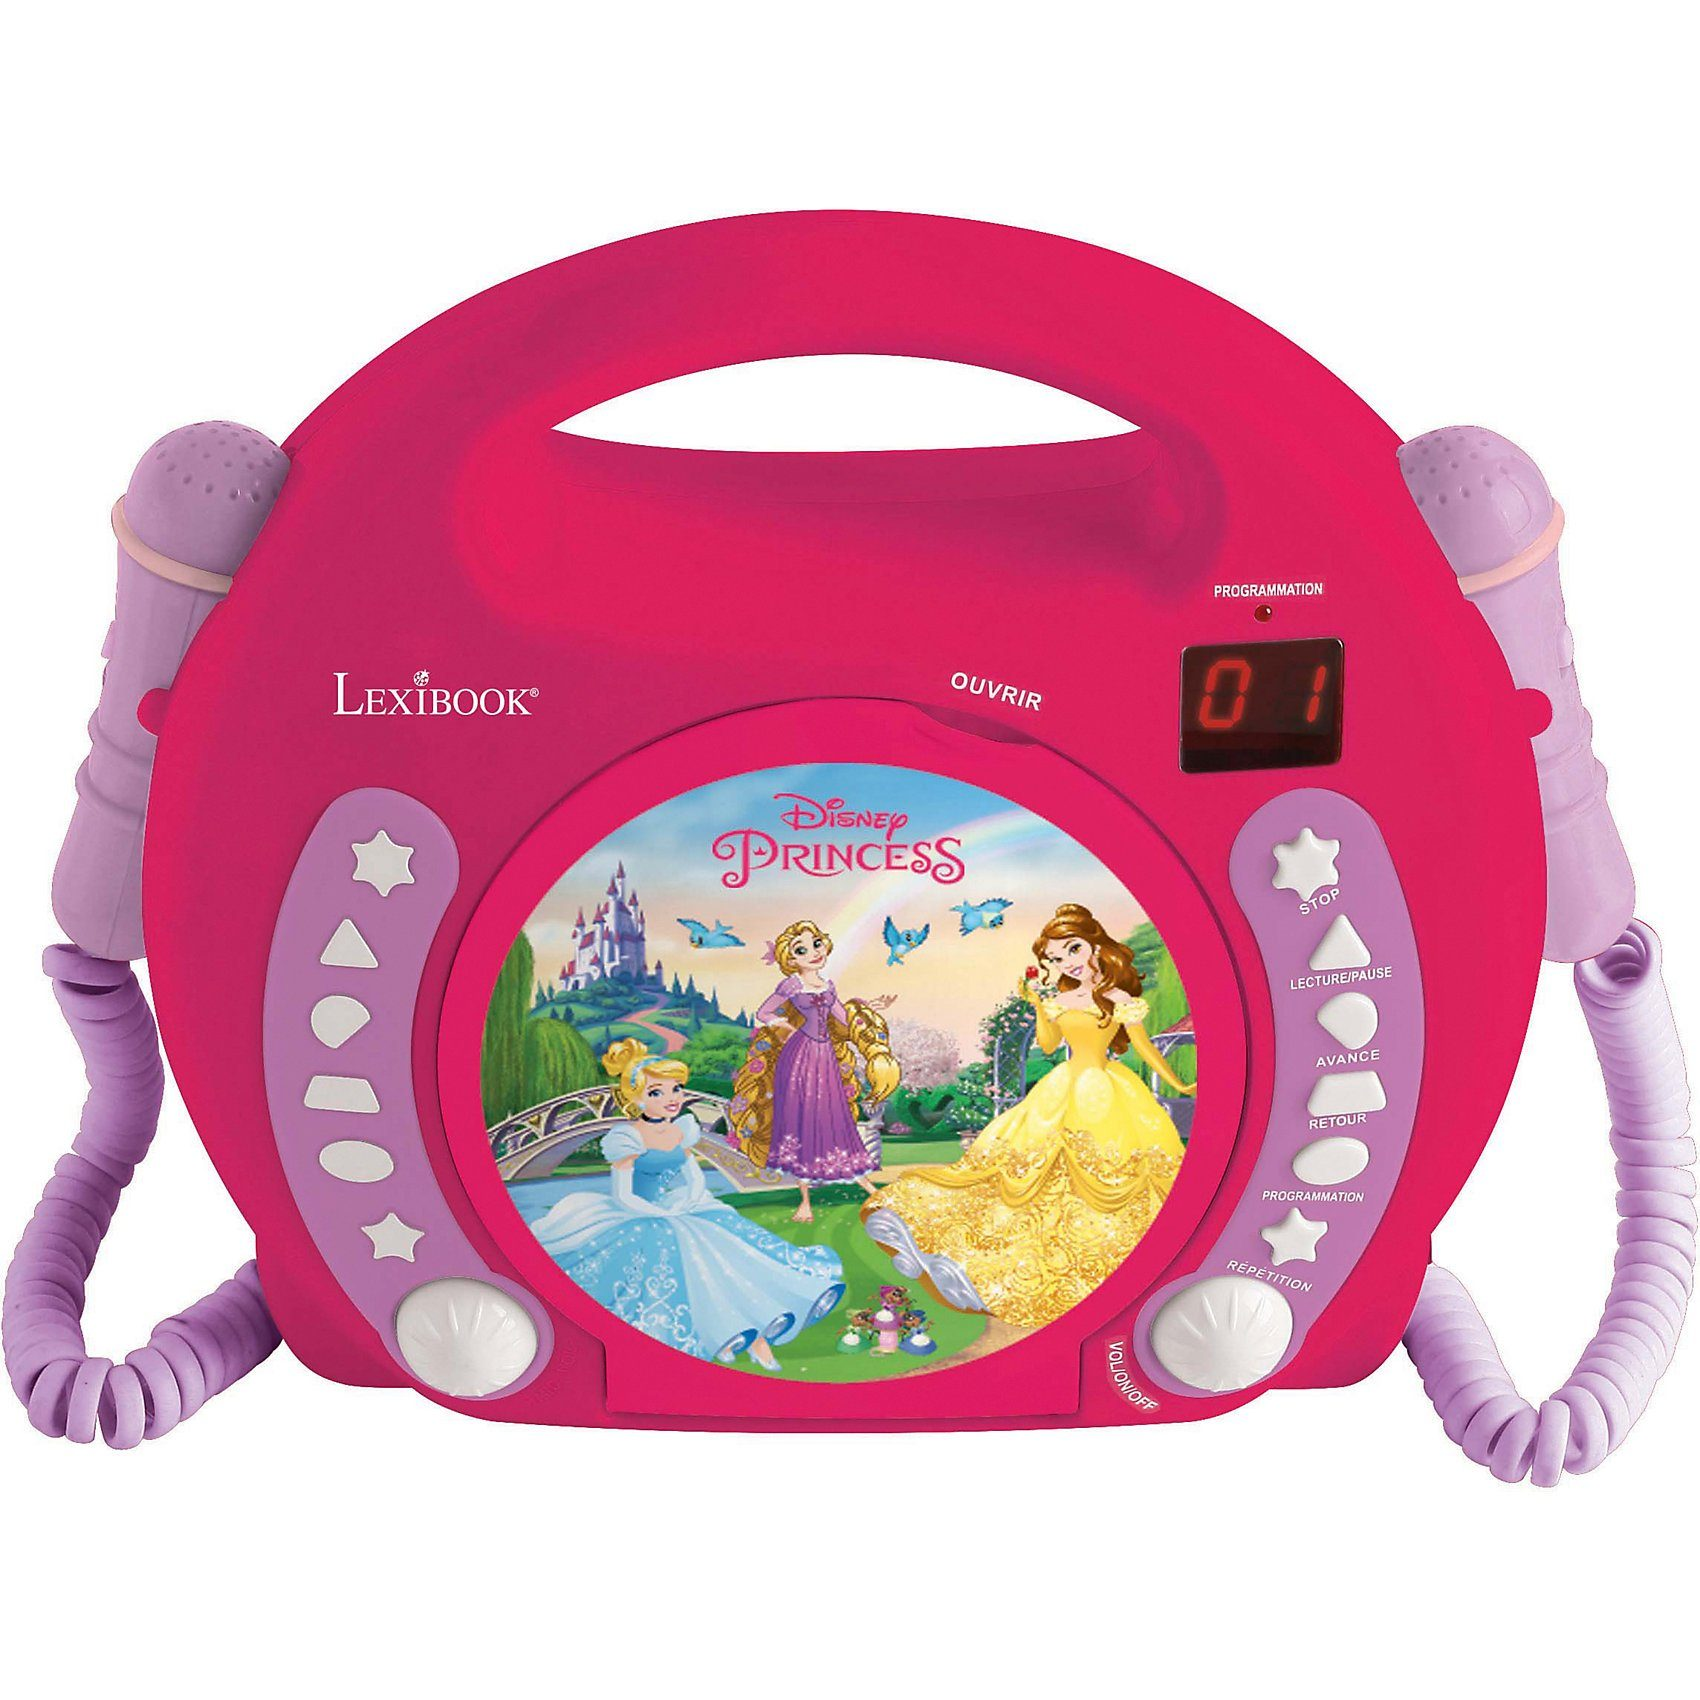 Lexibook® Disney Princess Kinder CD-Player mit 2 Mikrofonen